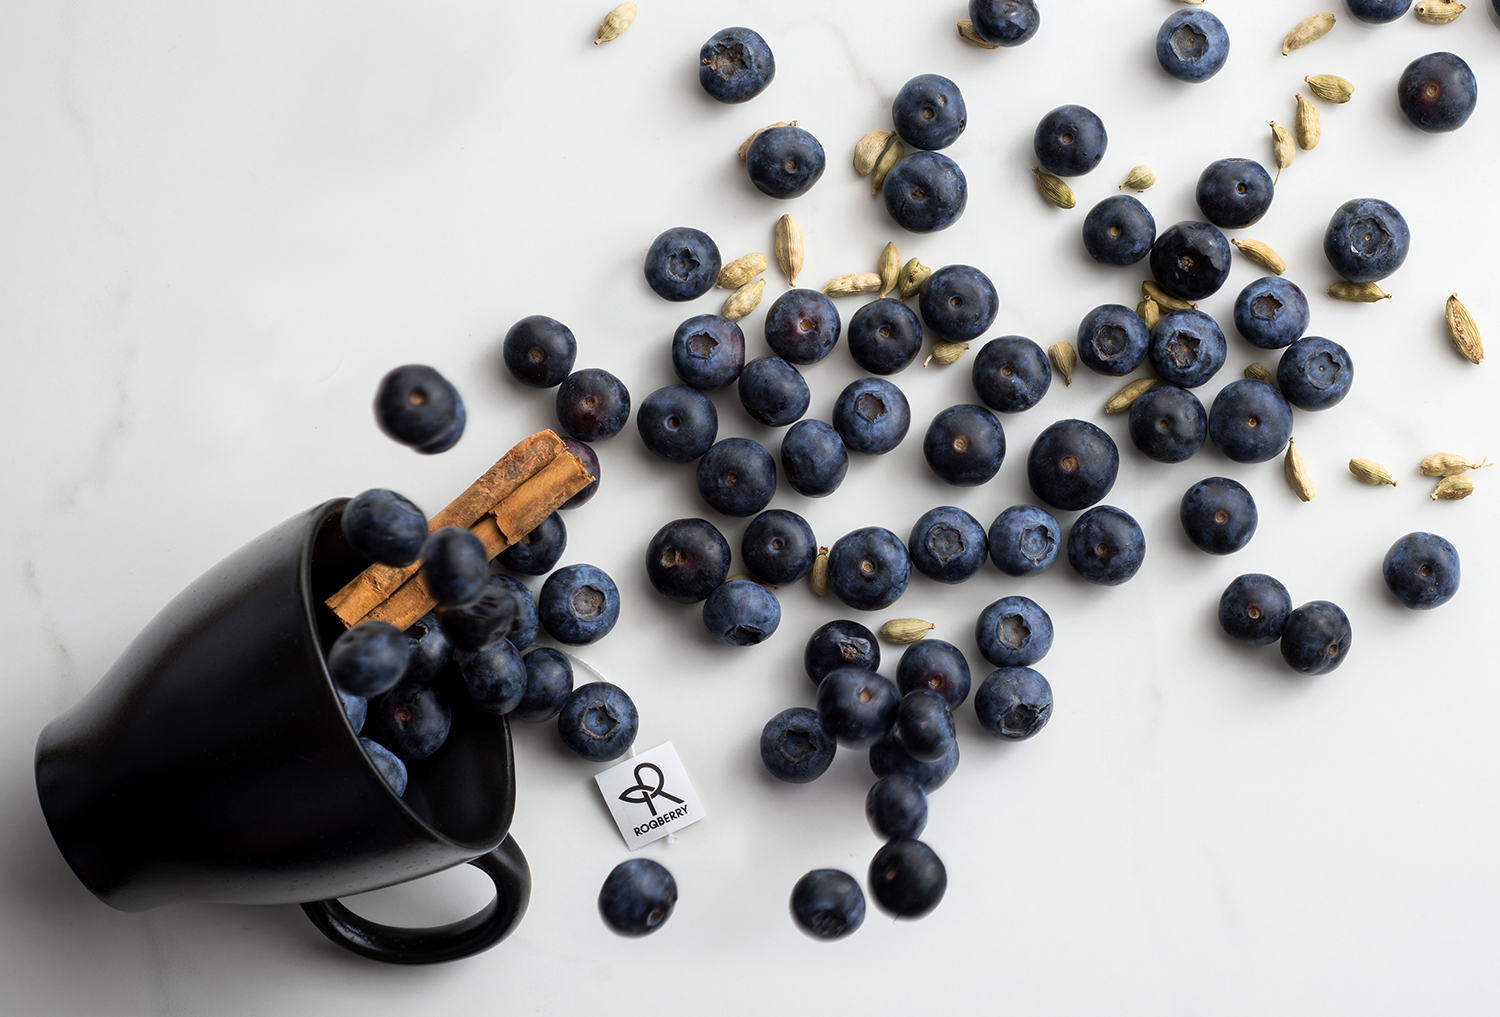 Roqberry_Spiced Blueberry_Product Image_1500px_72dpi.jpg